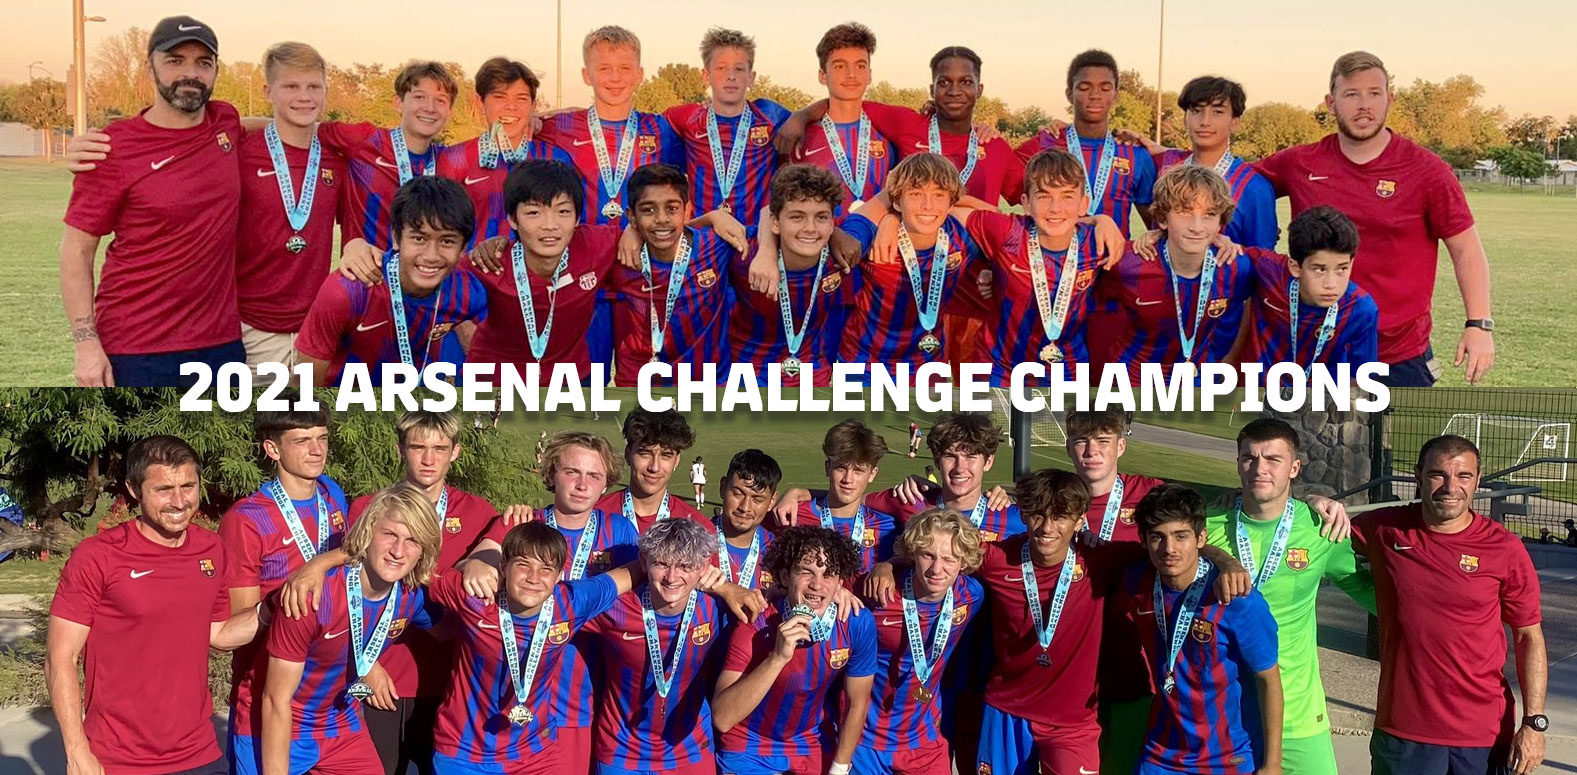 Group photos of Barca Residency Academy U-15 and U-19 teams after winning the 2021 Arsenal Challenge